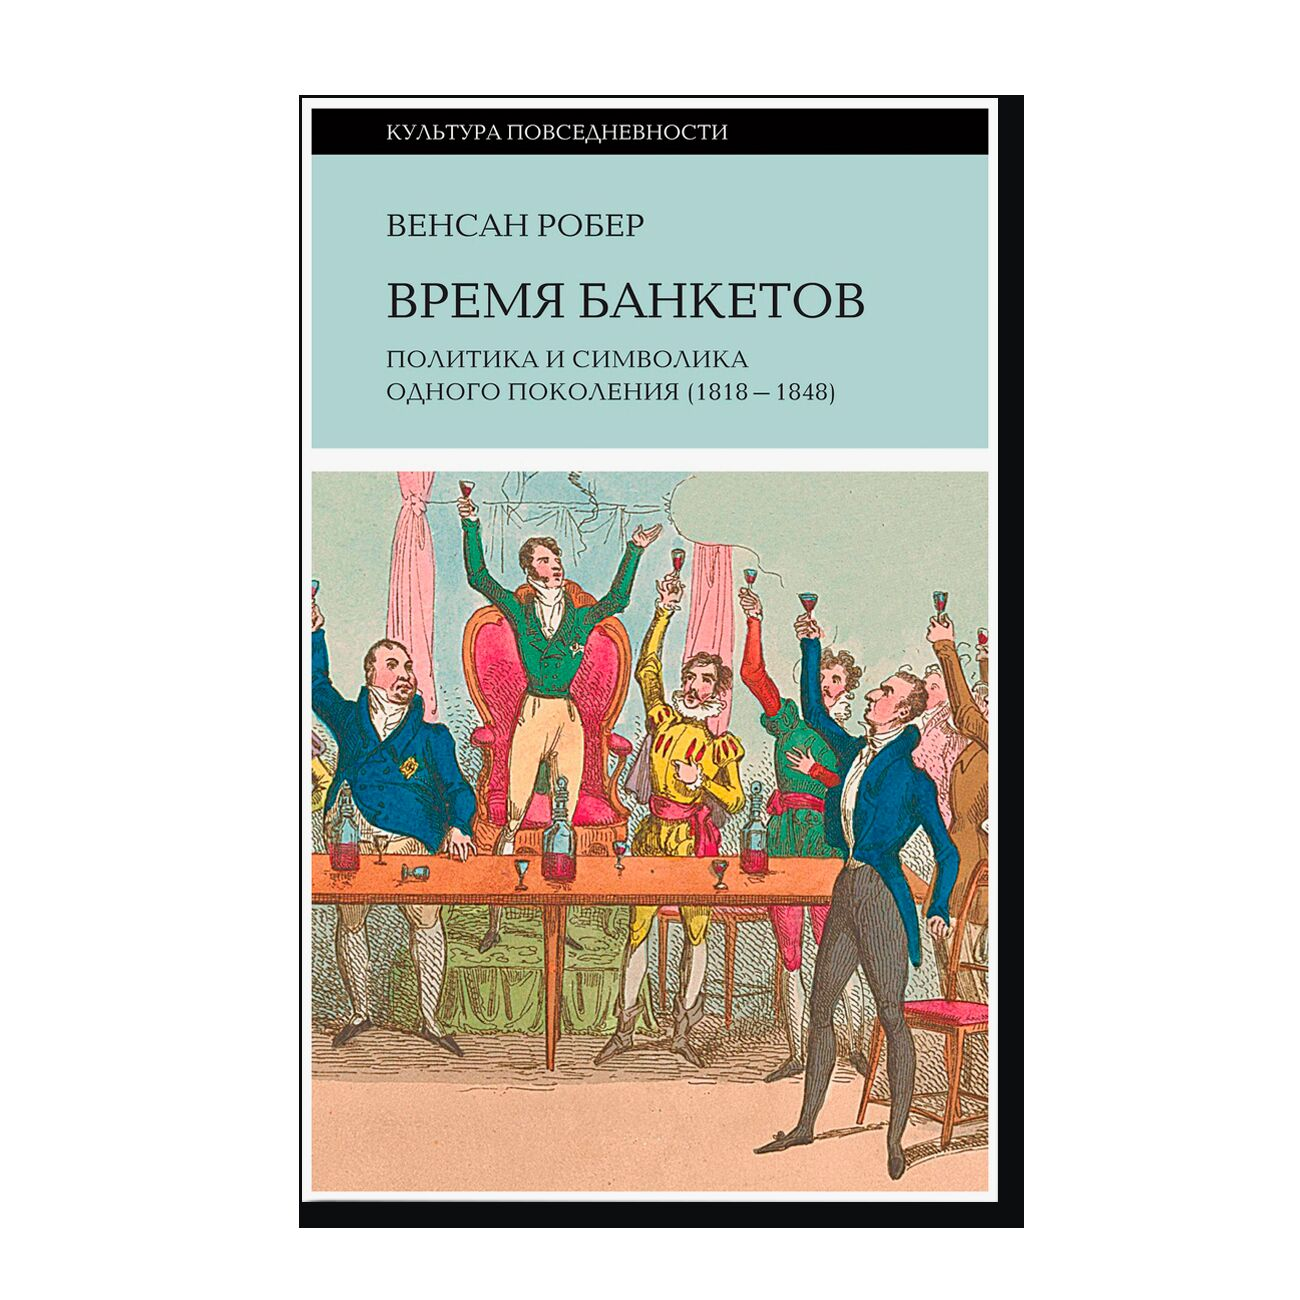 The Time of Banquets: The Politics and Symbols of a Generation (1818-1848)